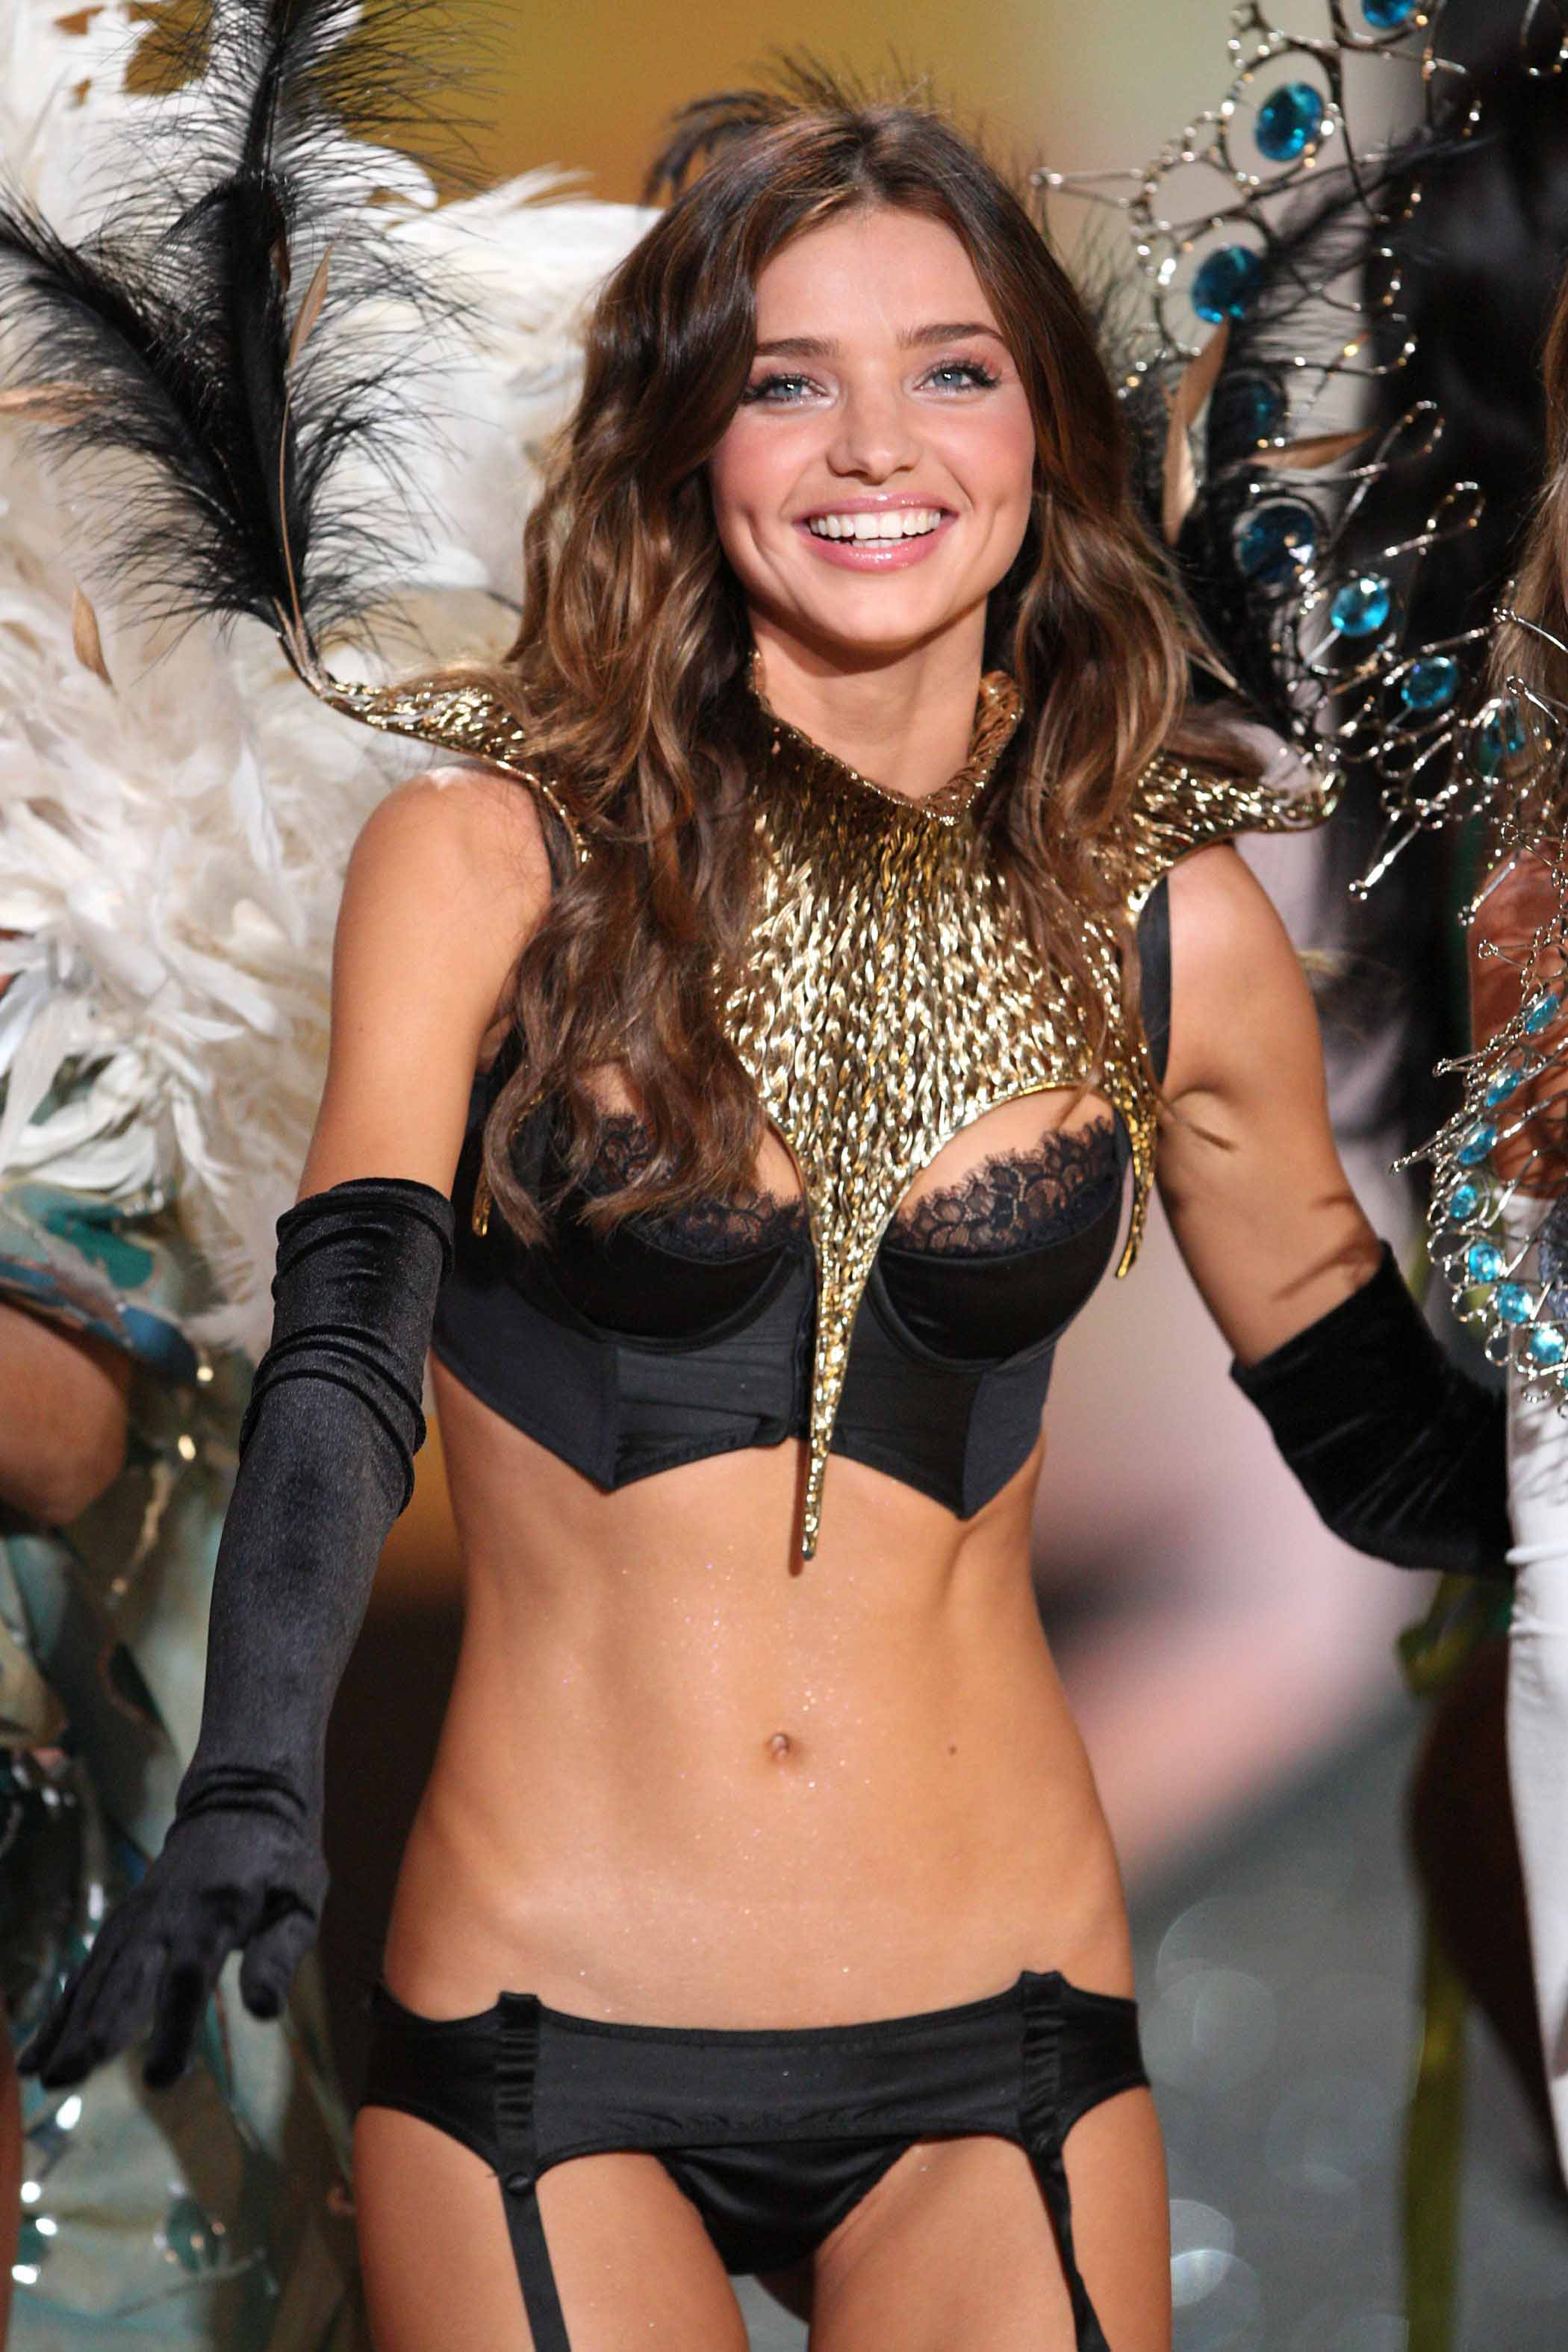 Victoria S Secret Model Halloween Costumes For Closet